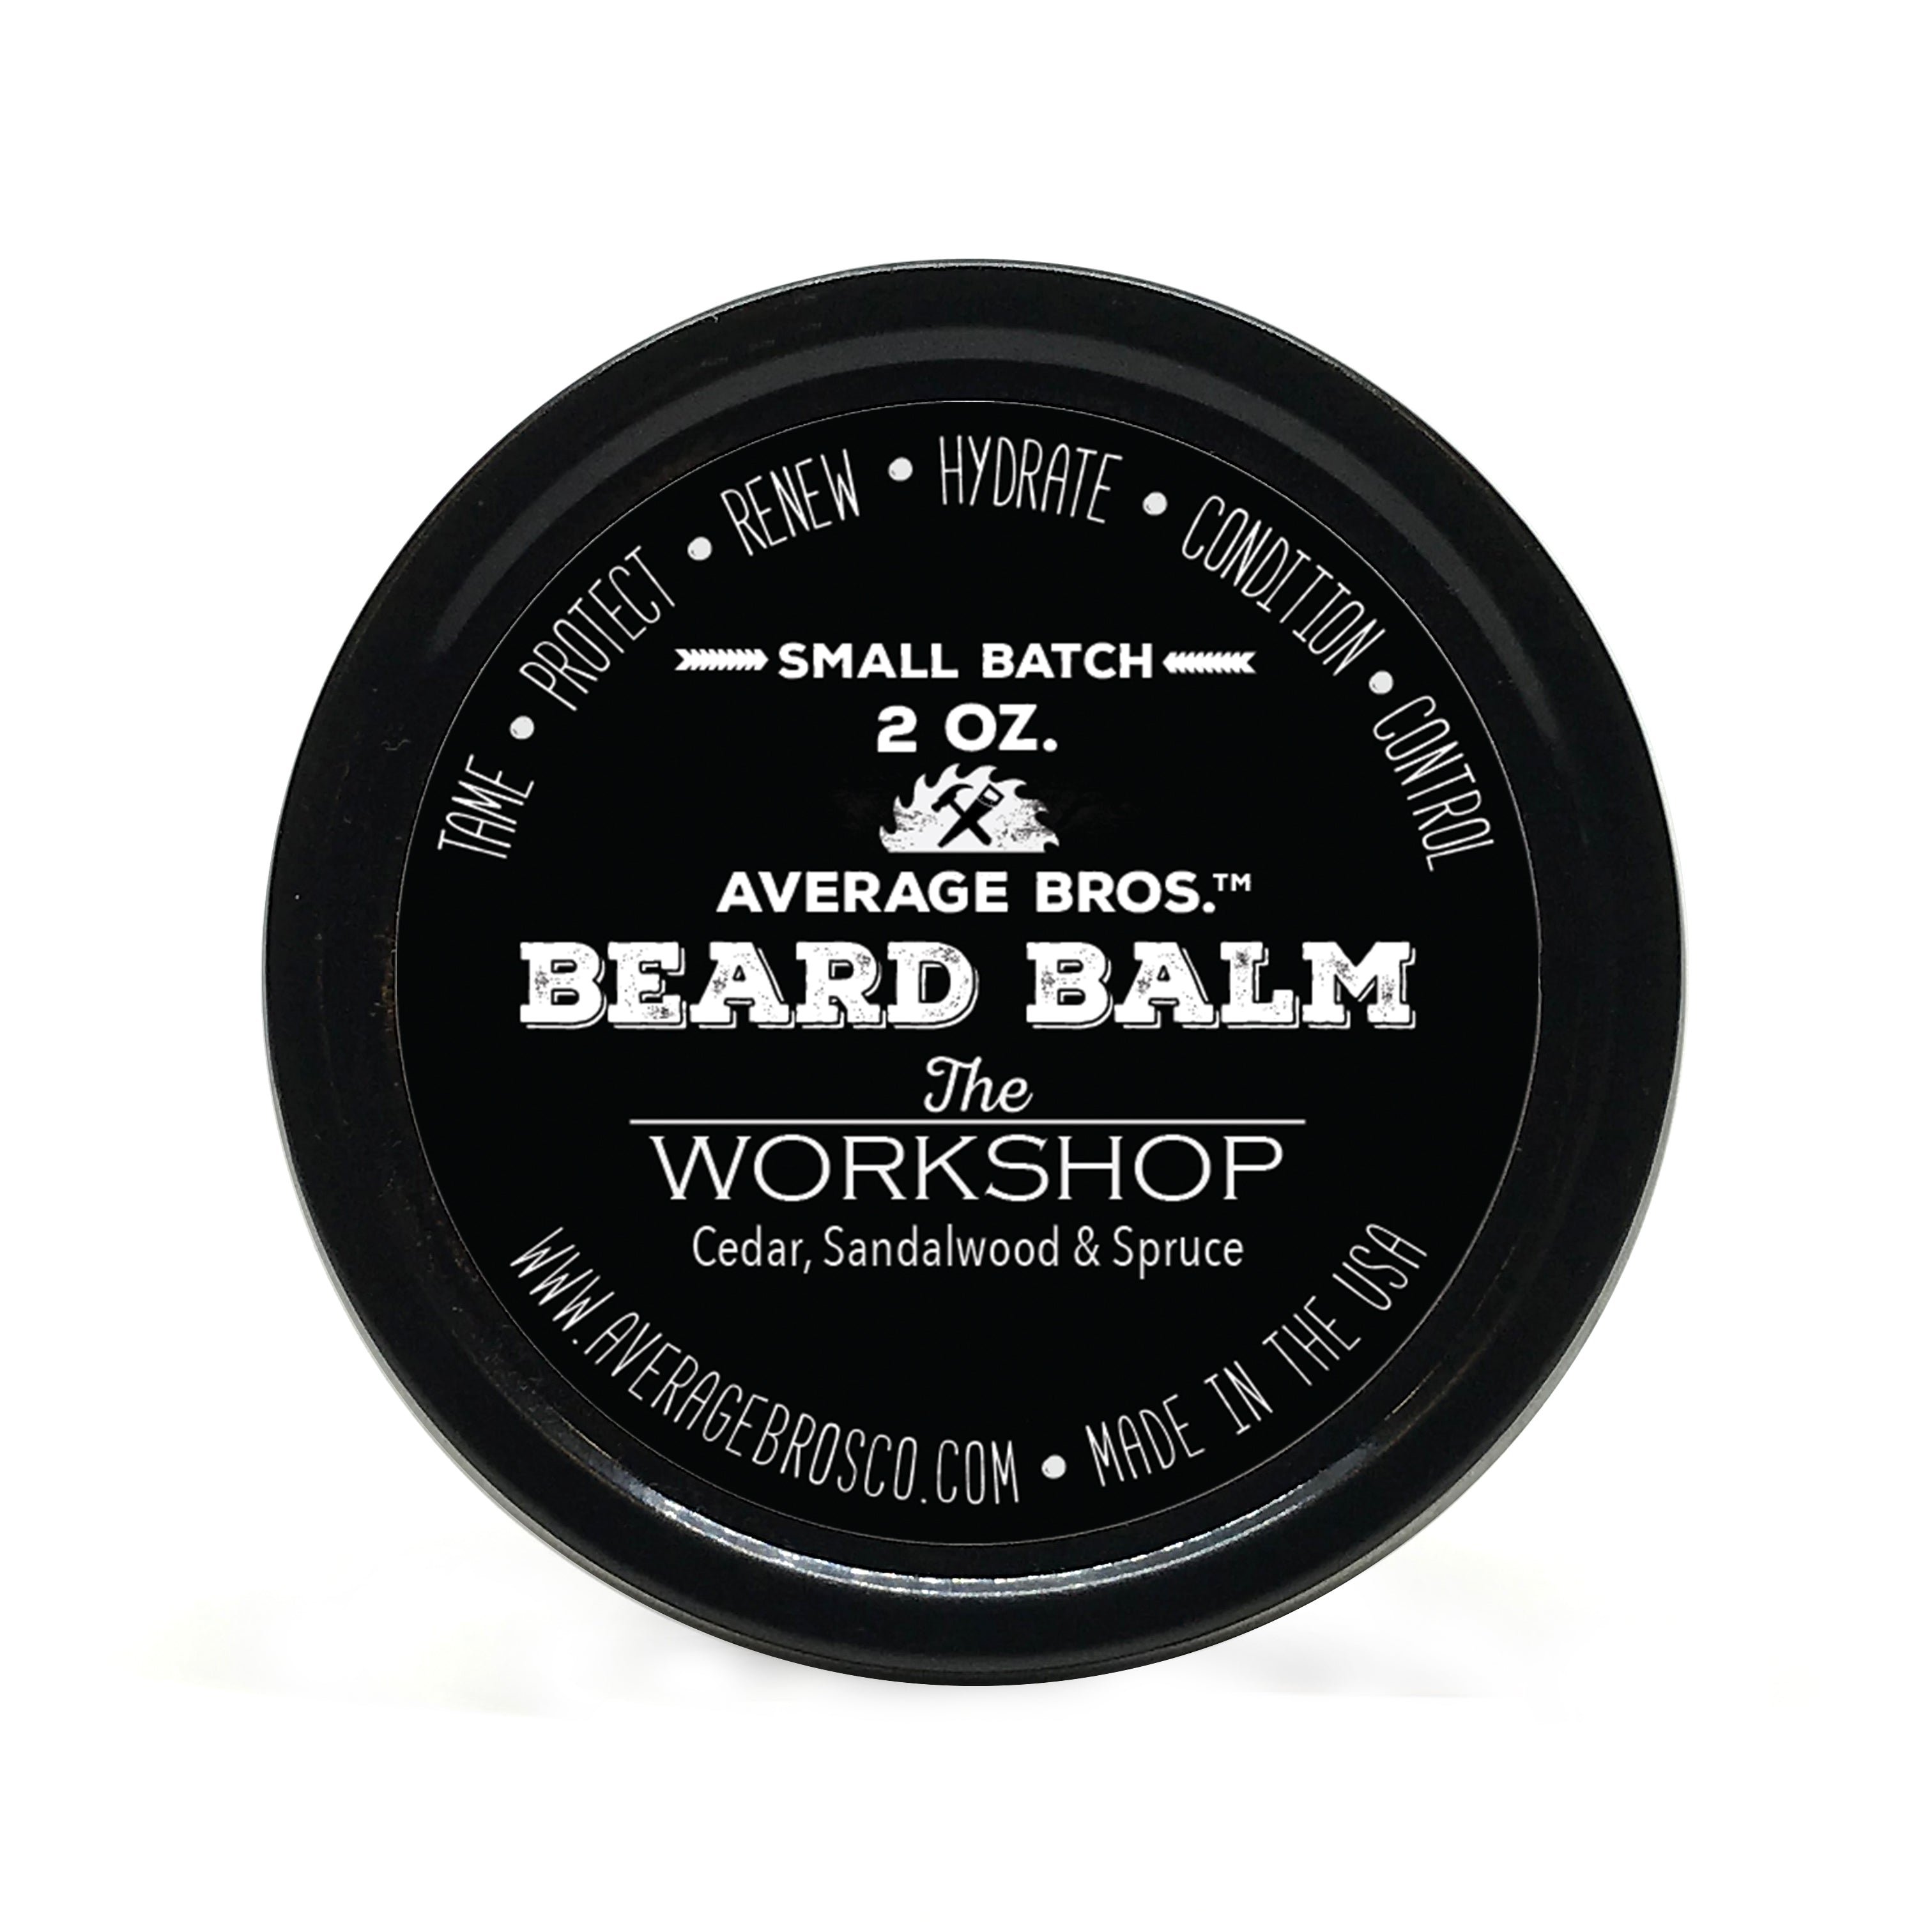 The Workshop - Beard Balm